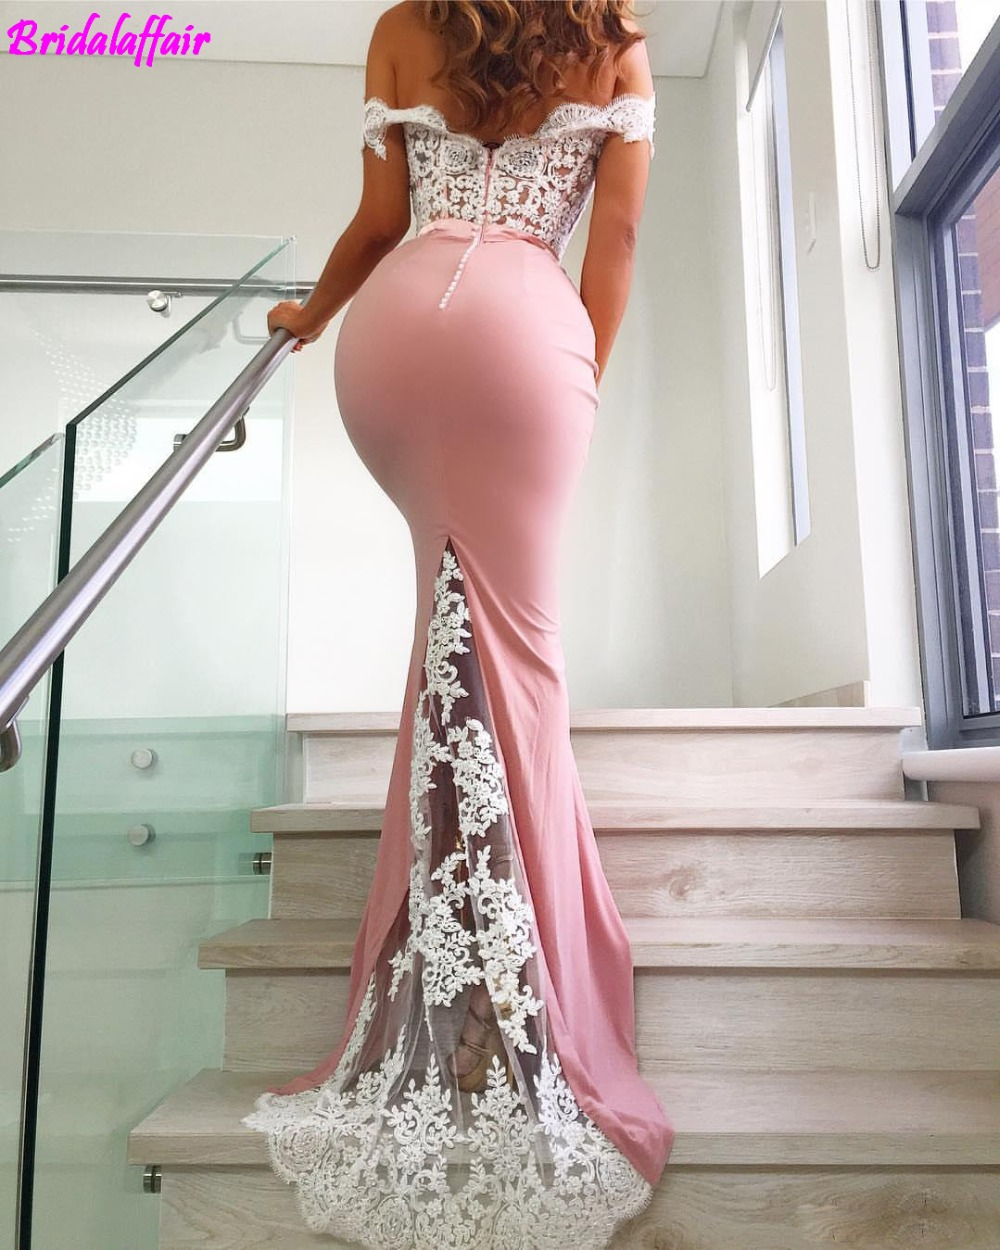 2019 Custom Made Party Dresses White Lace Top Pink Prom Dresses Mermaid Formal Dress Sexy Open Back Cheap Evening Gowns in Prom Dresses from Weddings Events